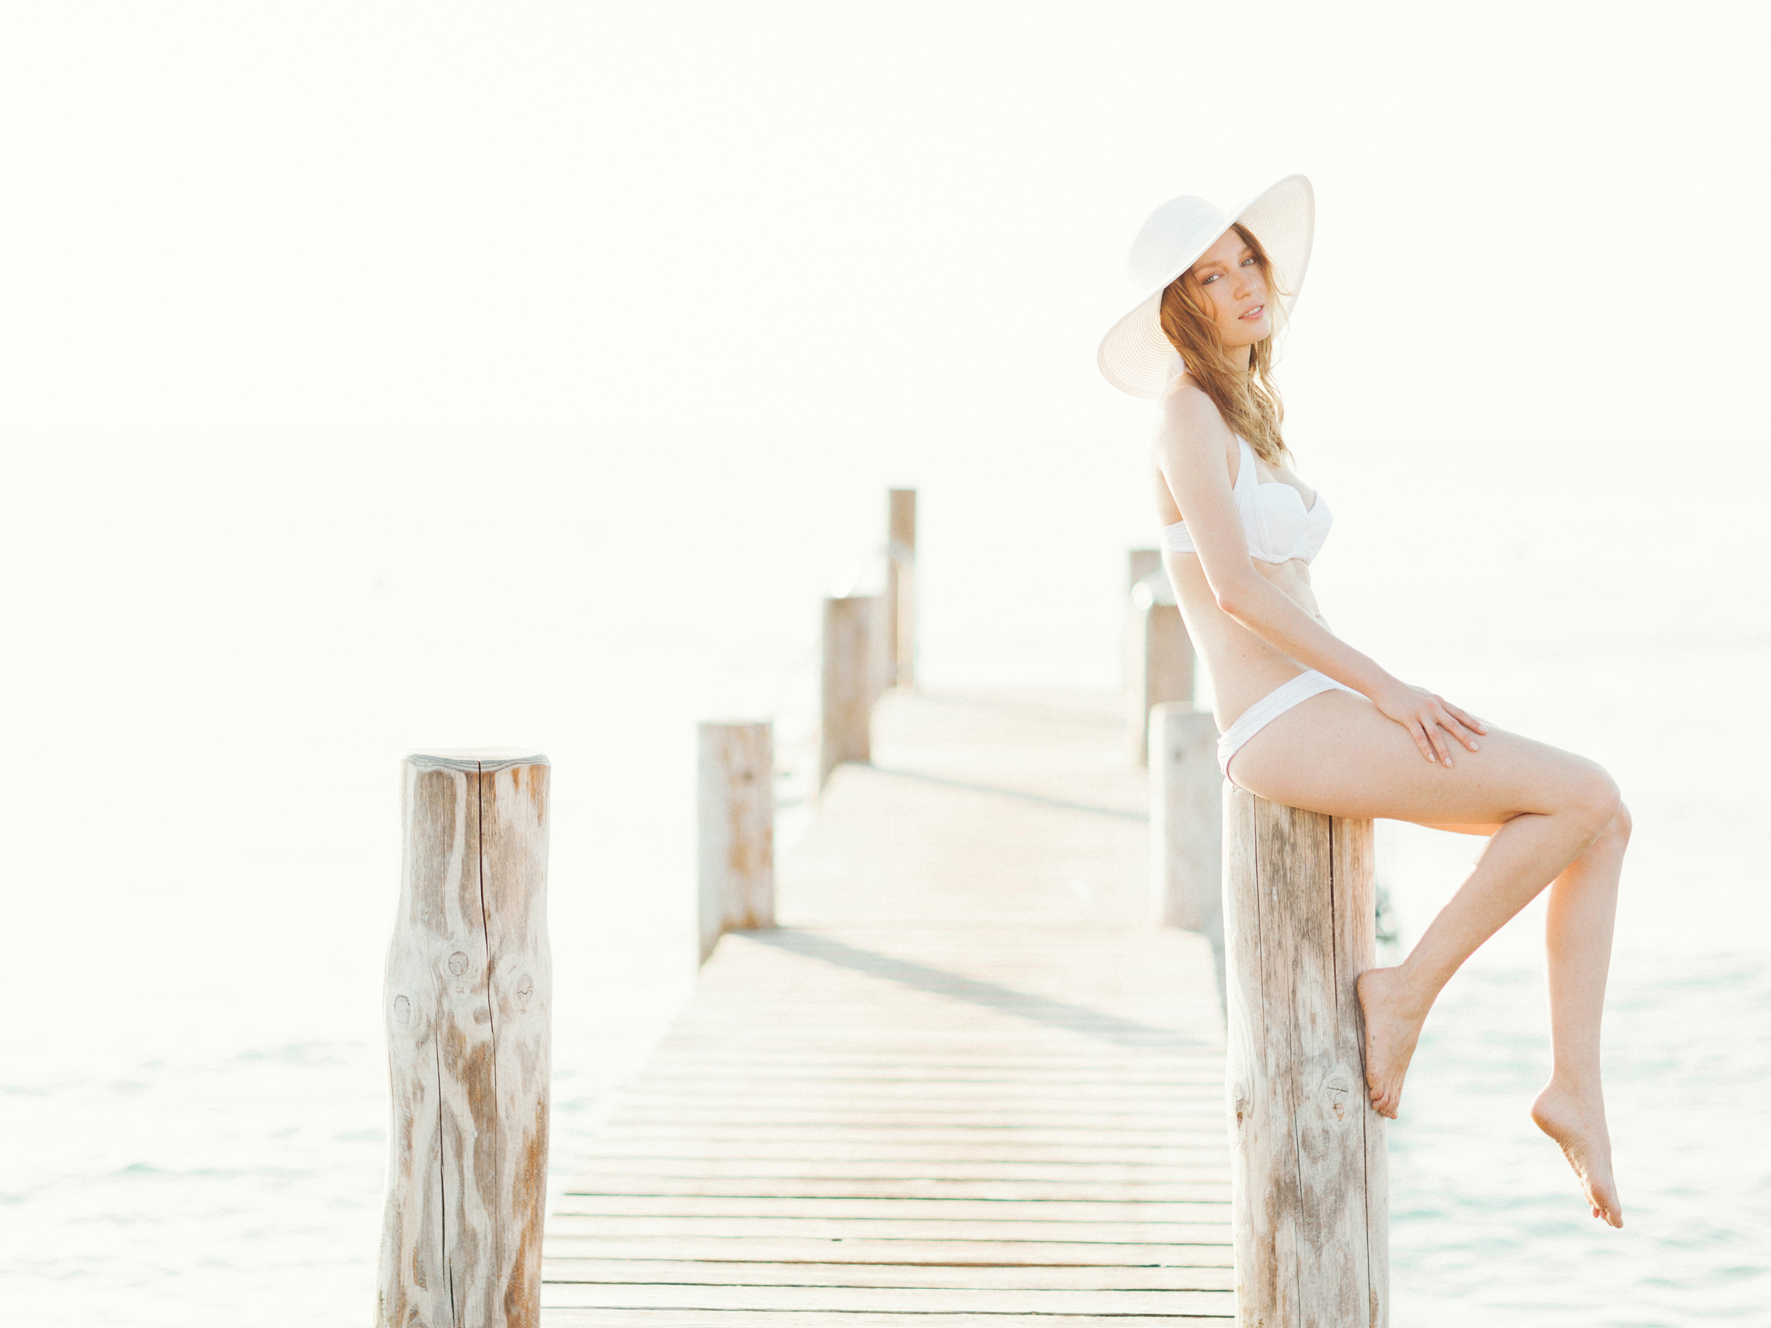 Saint Tropez Honeymoon Photo Session by Ashley Ludaescher Photography (24)